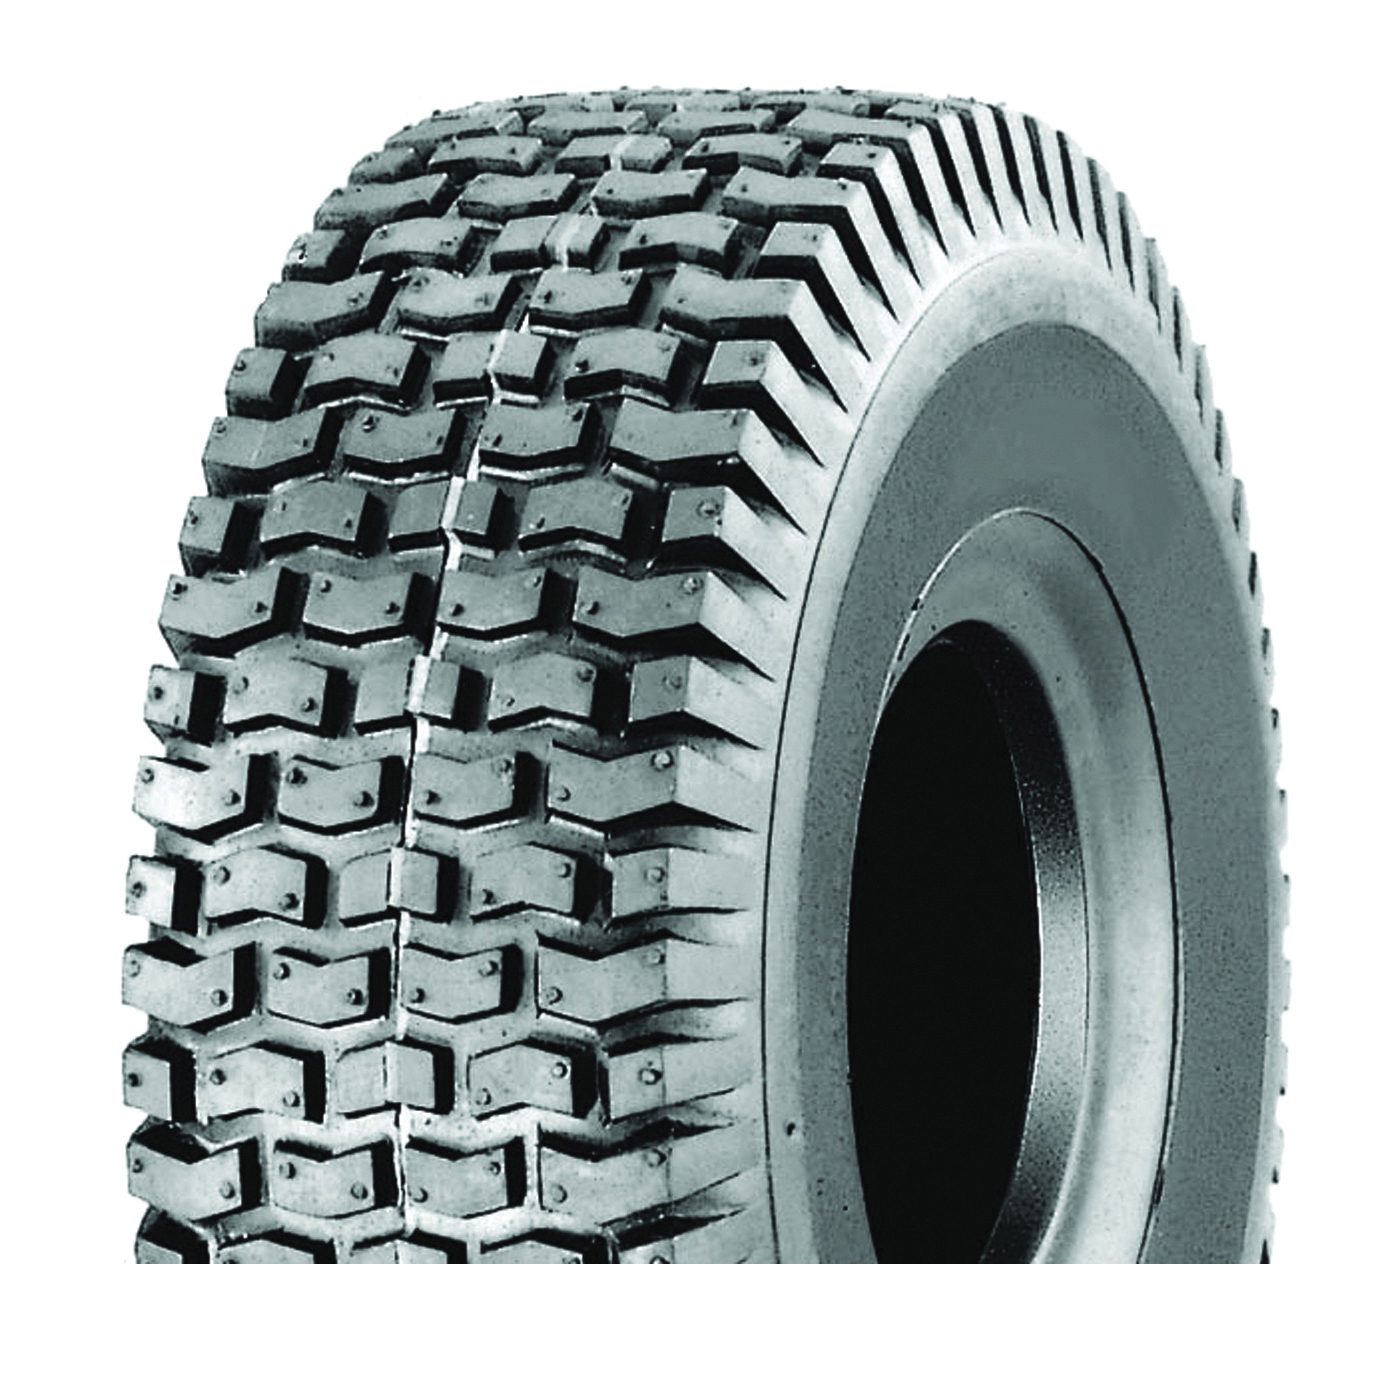 Picture of MARTIN WHEEL 506-2TR-I Turf Rider Tire, Tubeless, For: 6 x 3-1/4 in Rim Lawnmowers and Tractors